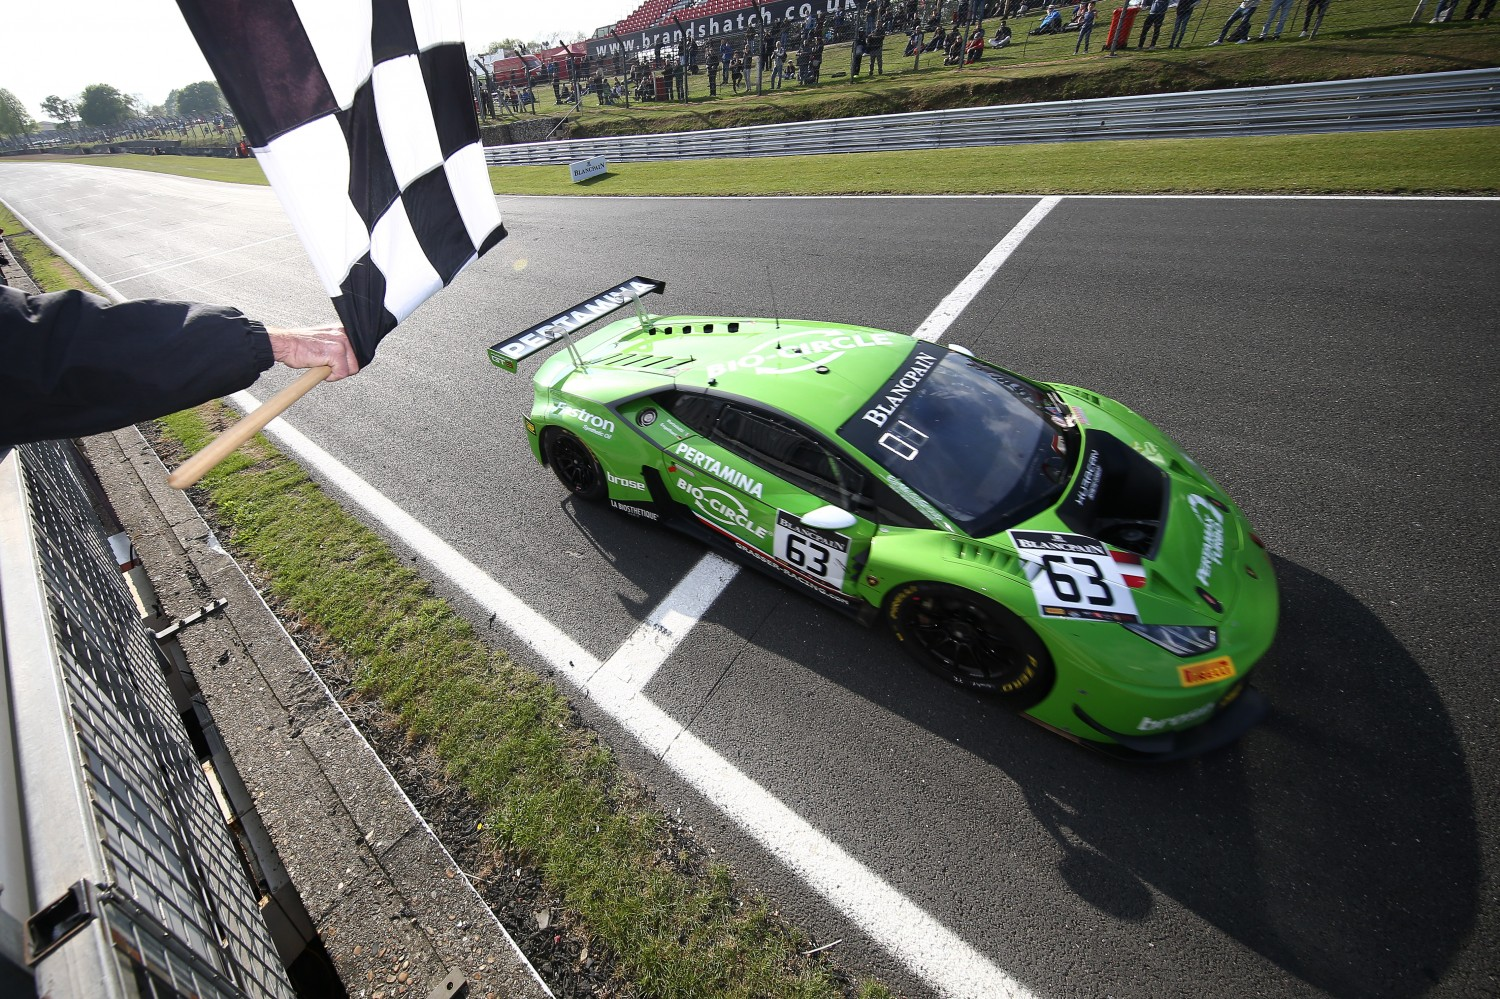 Clear win gives Lamborghini-duo Bortolotti and Engelhart championship lead